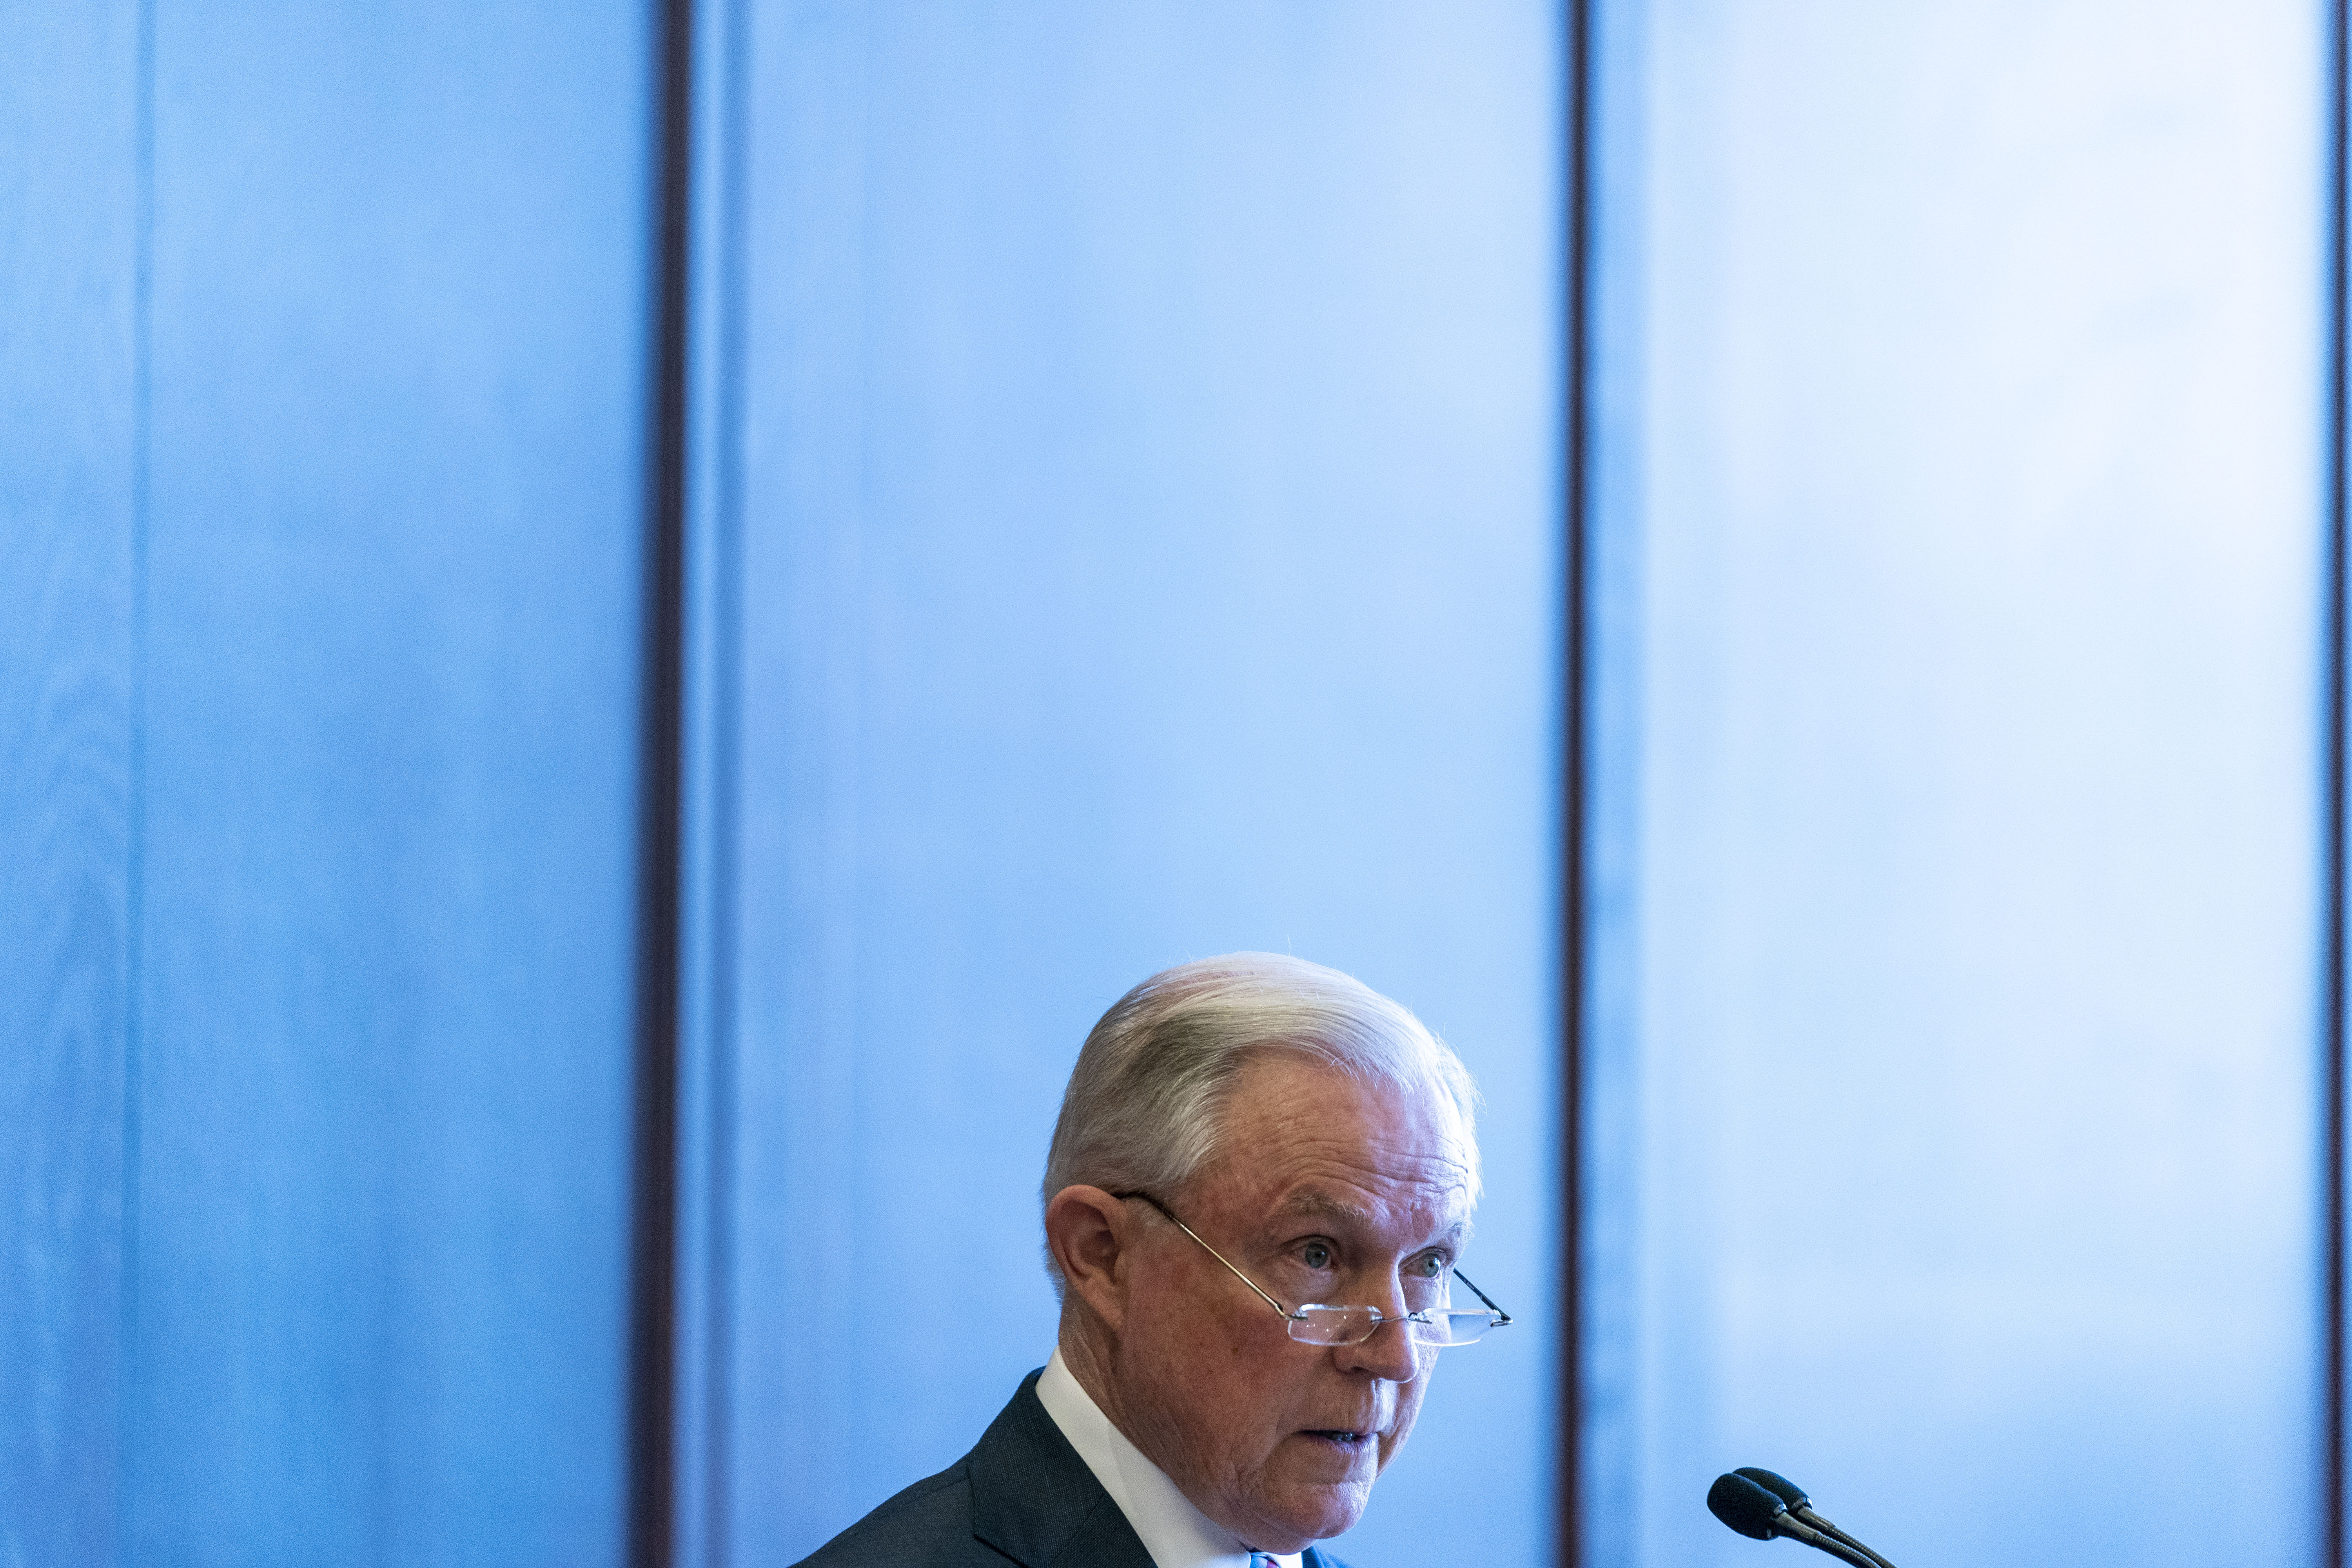 U.S. Attorney General Jeff Sessions delivers remarks on immigration and law enforcement actions on at Lackawanna College June 15, 2018 in Scranton, Pennsylvania.